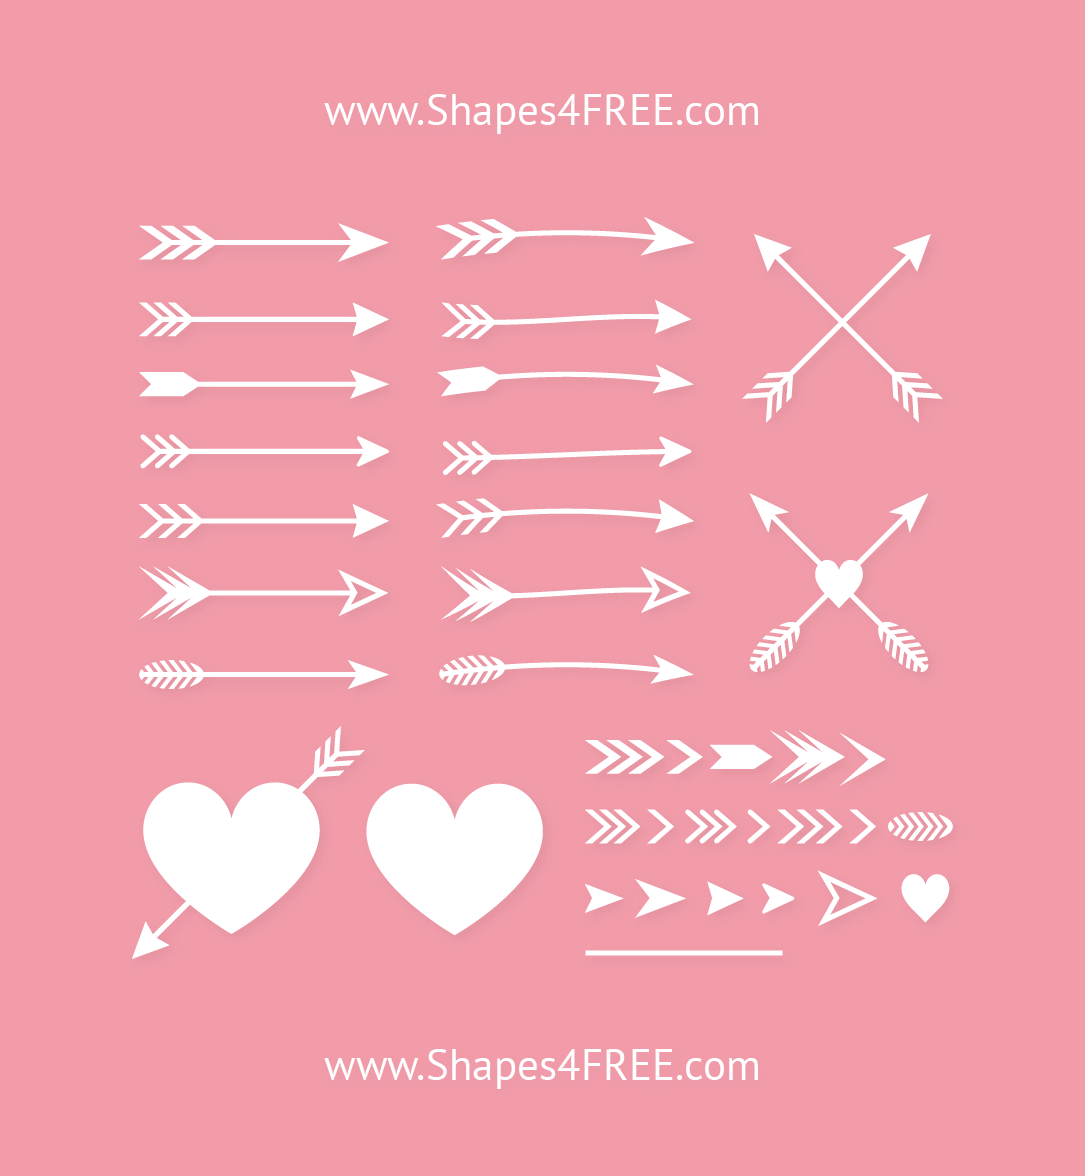 Archer Arrows Photoshop Shapes